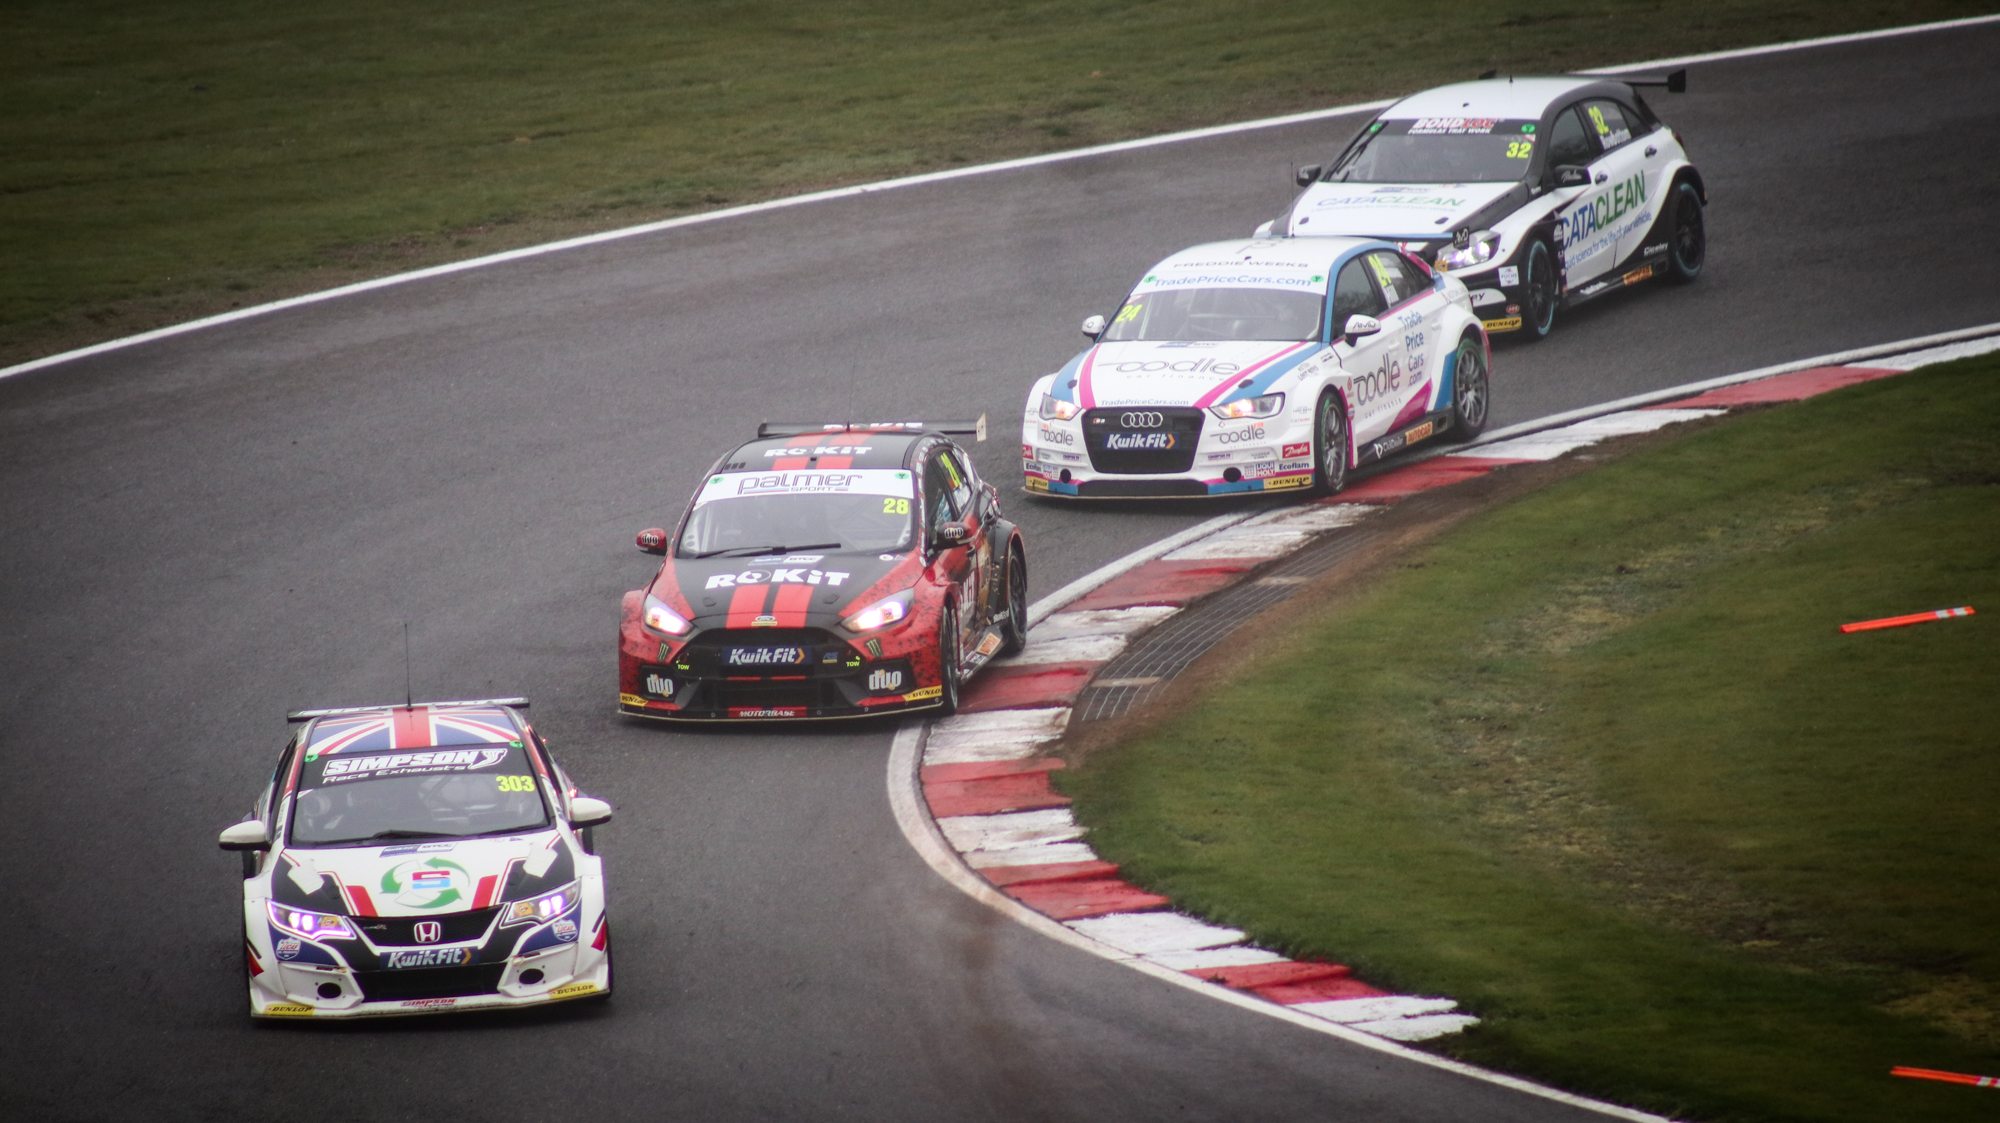 British Touring Cars at Brands Hatch